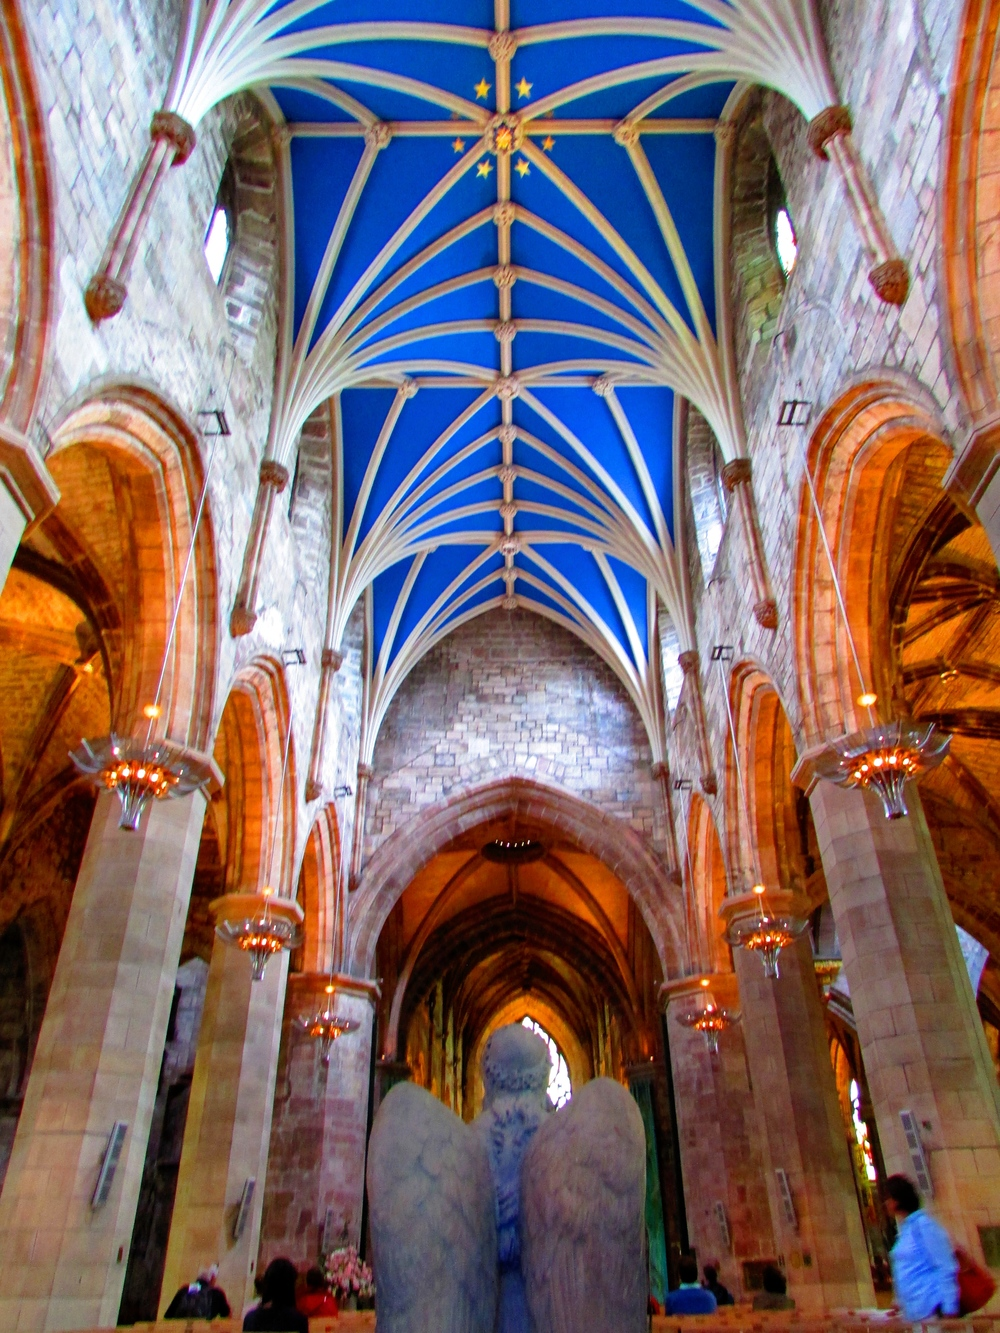 The stunning central aisle of St. Giles Cathedral in Edinburgh, Scotland